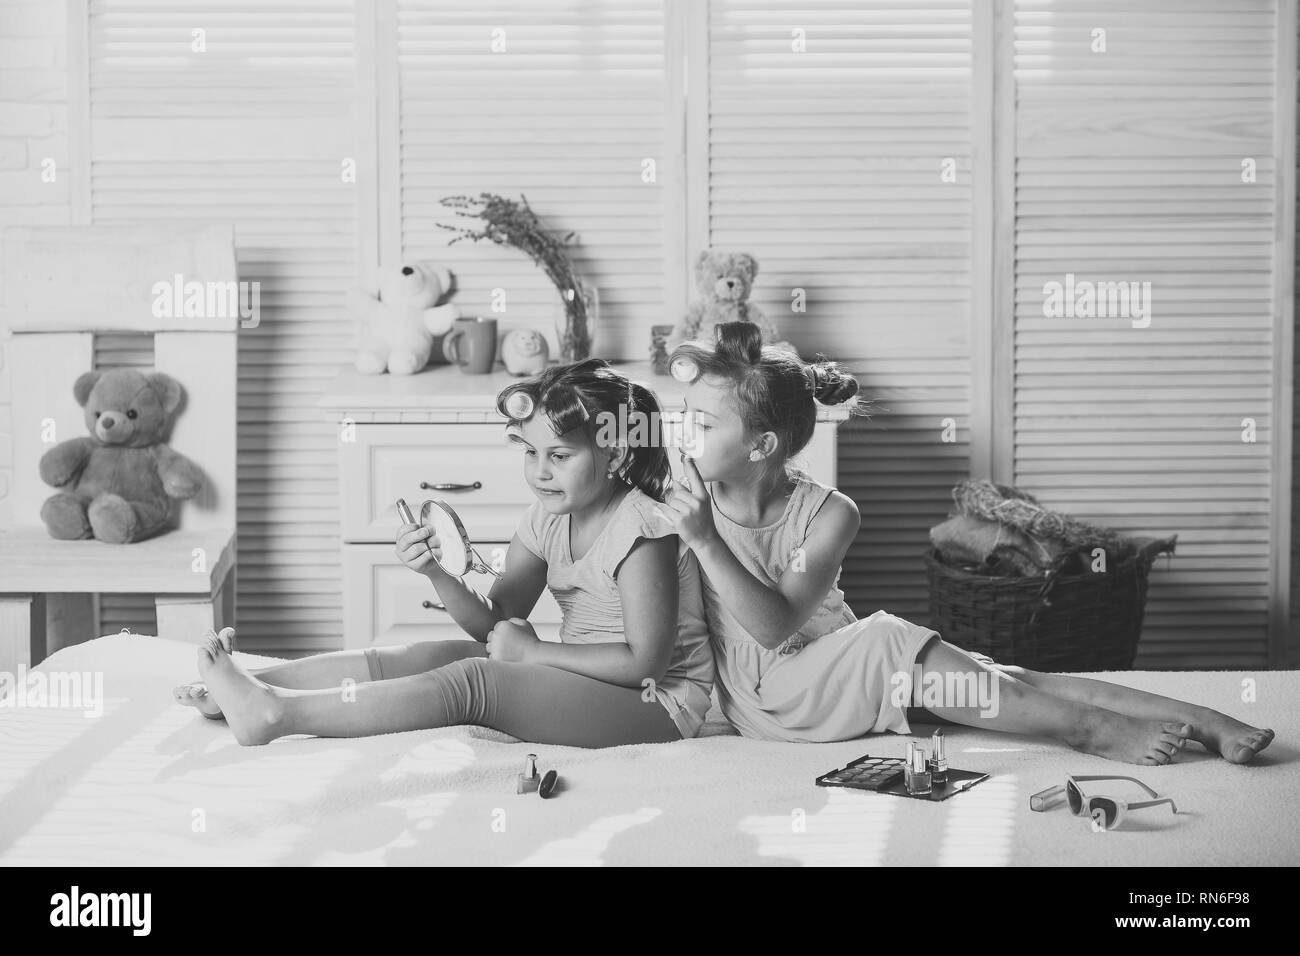 Children smile and sit on bed with lipstick and mirror - Stock Image